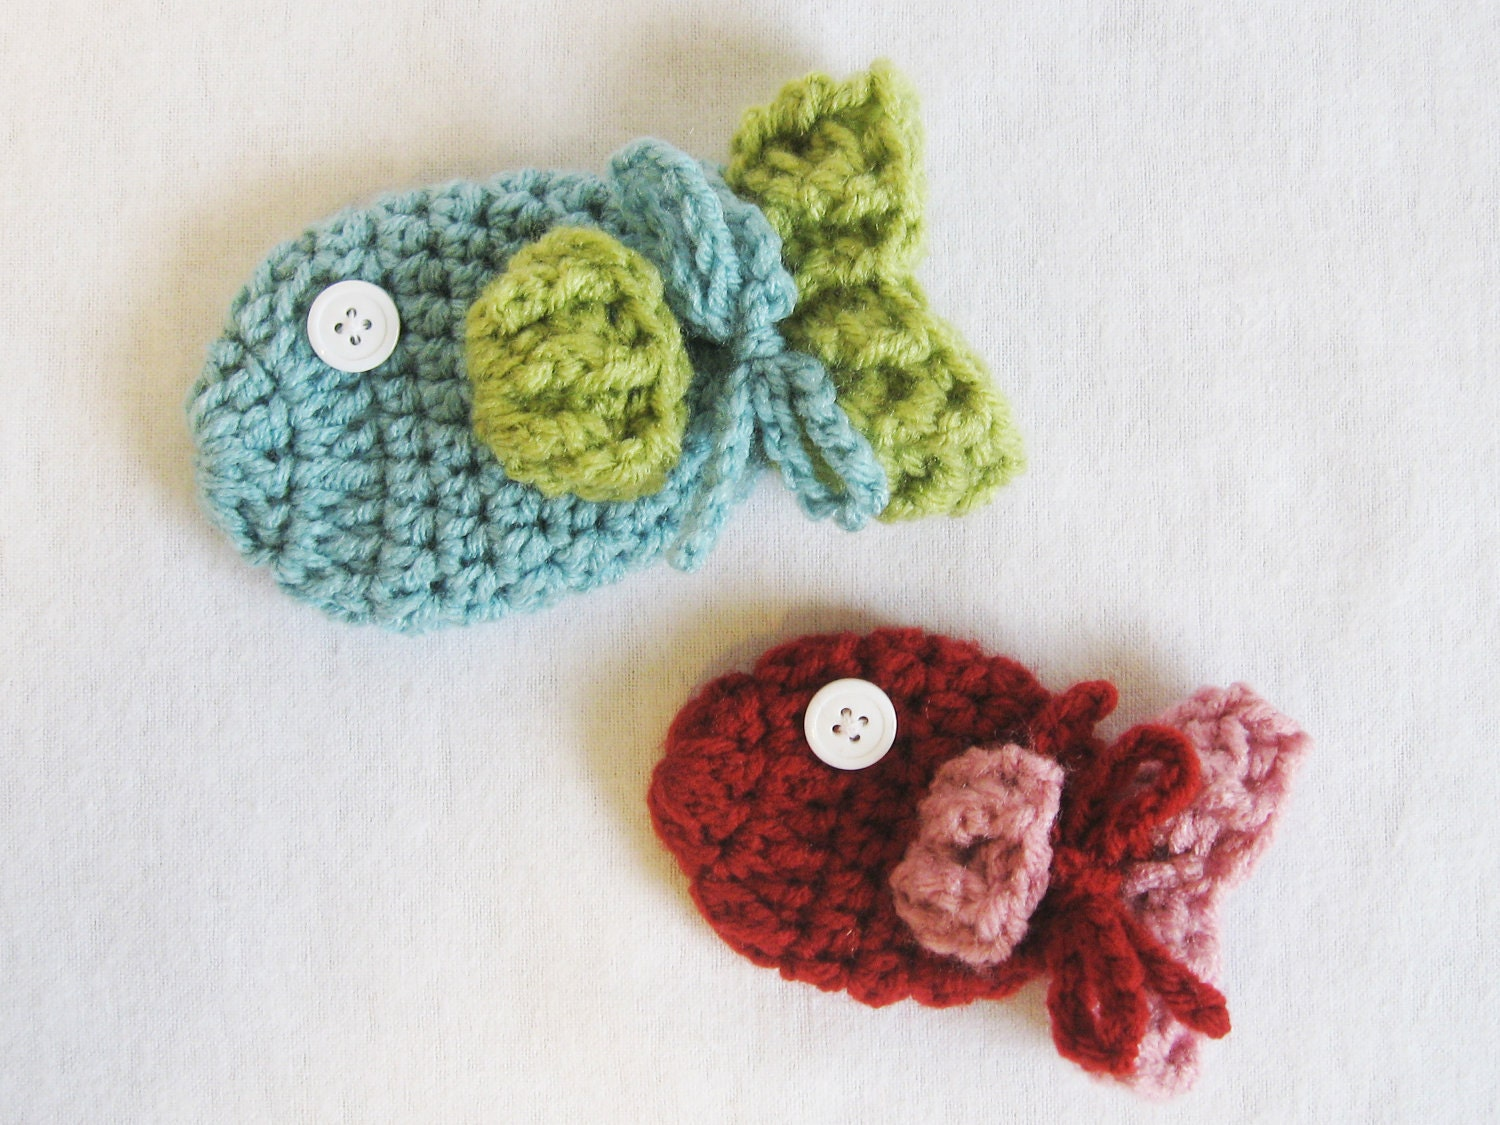 Baby CROCHET PATTERN Baby Fish Mittens 3 sizes included from